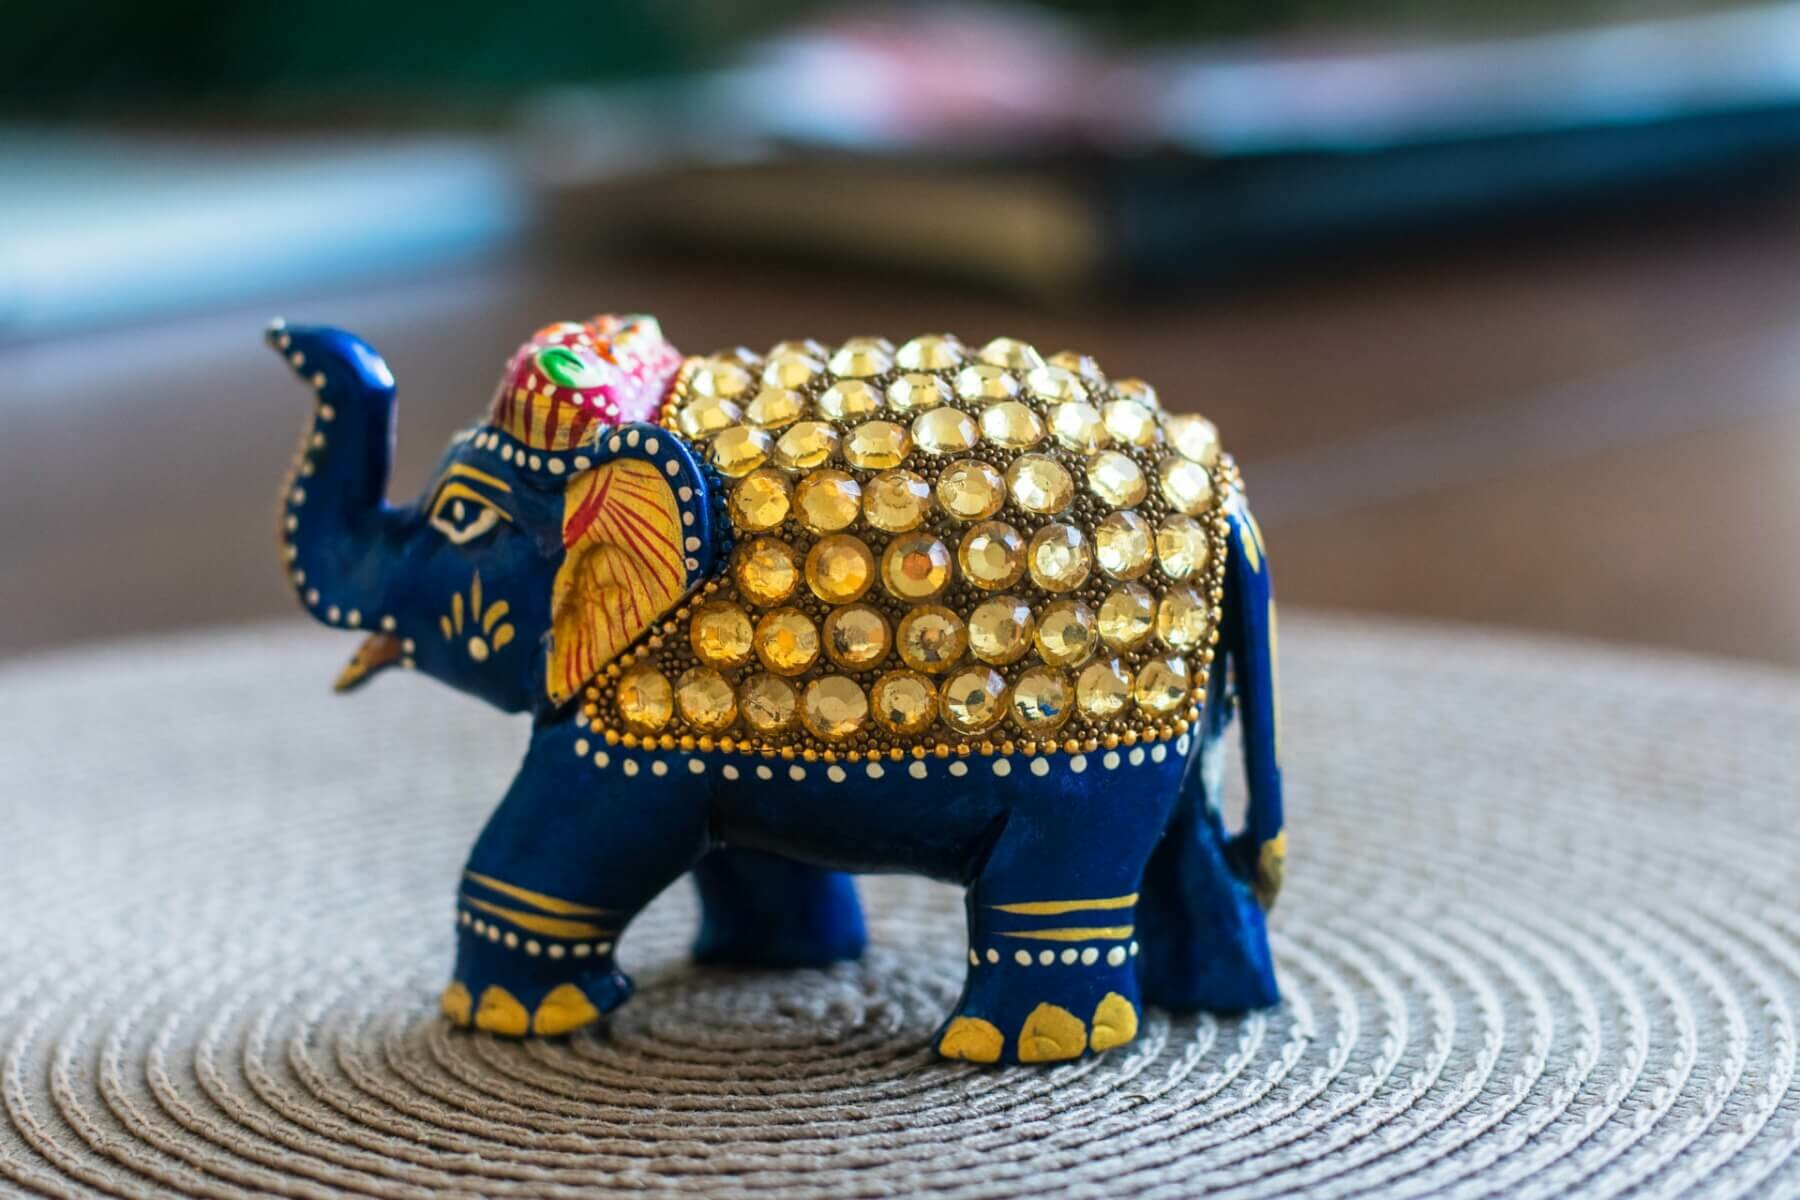 Photo of decorative elephant on a coffee table. Photo credit: Daniel Brubaker